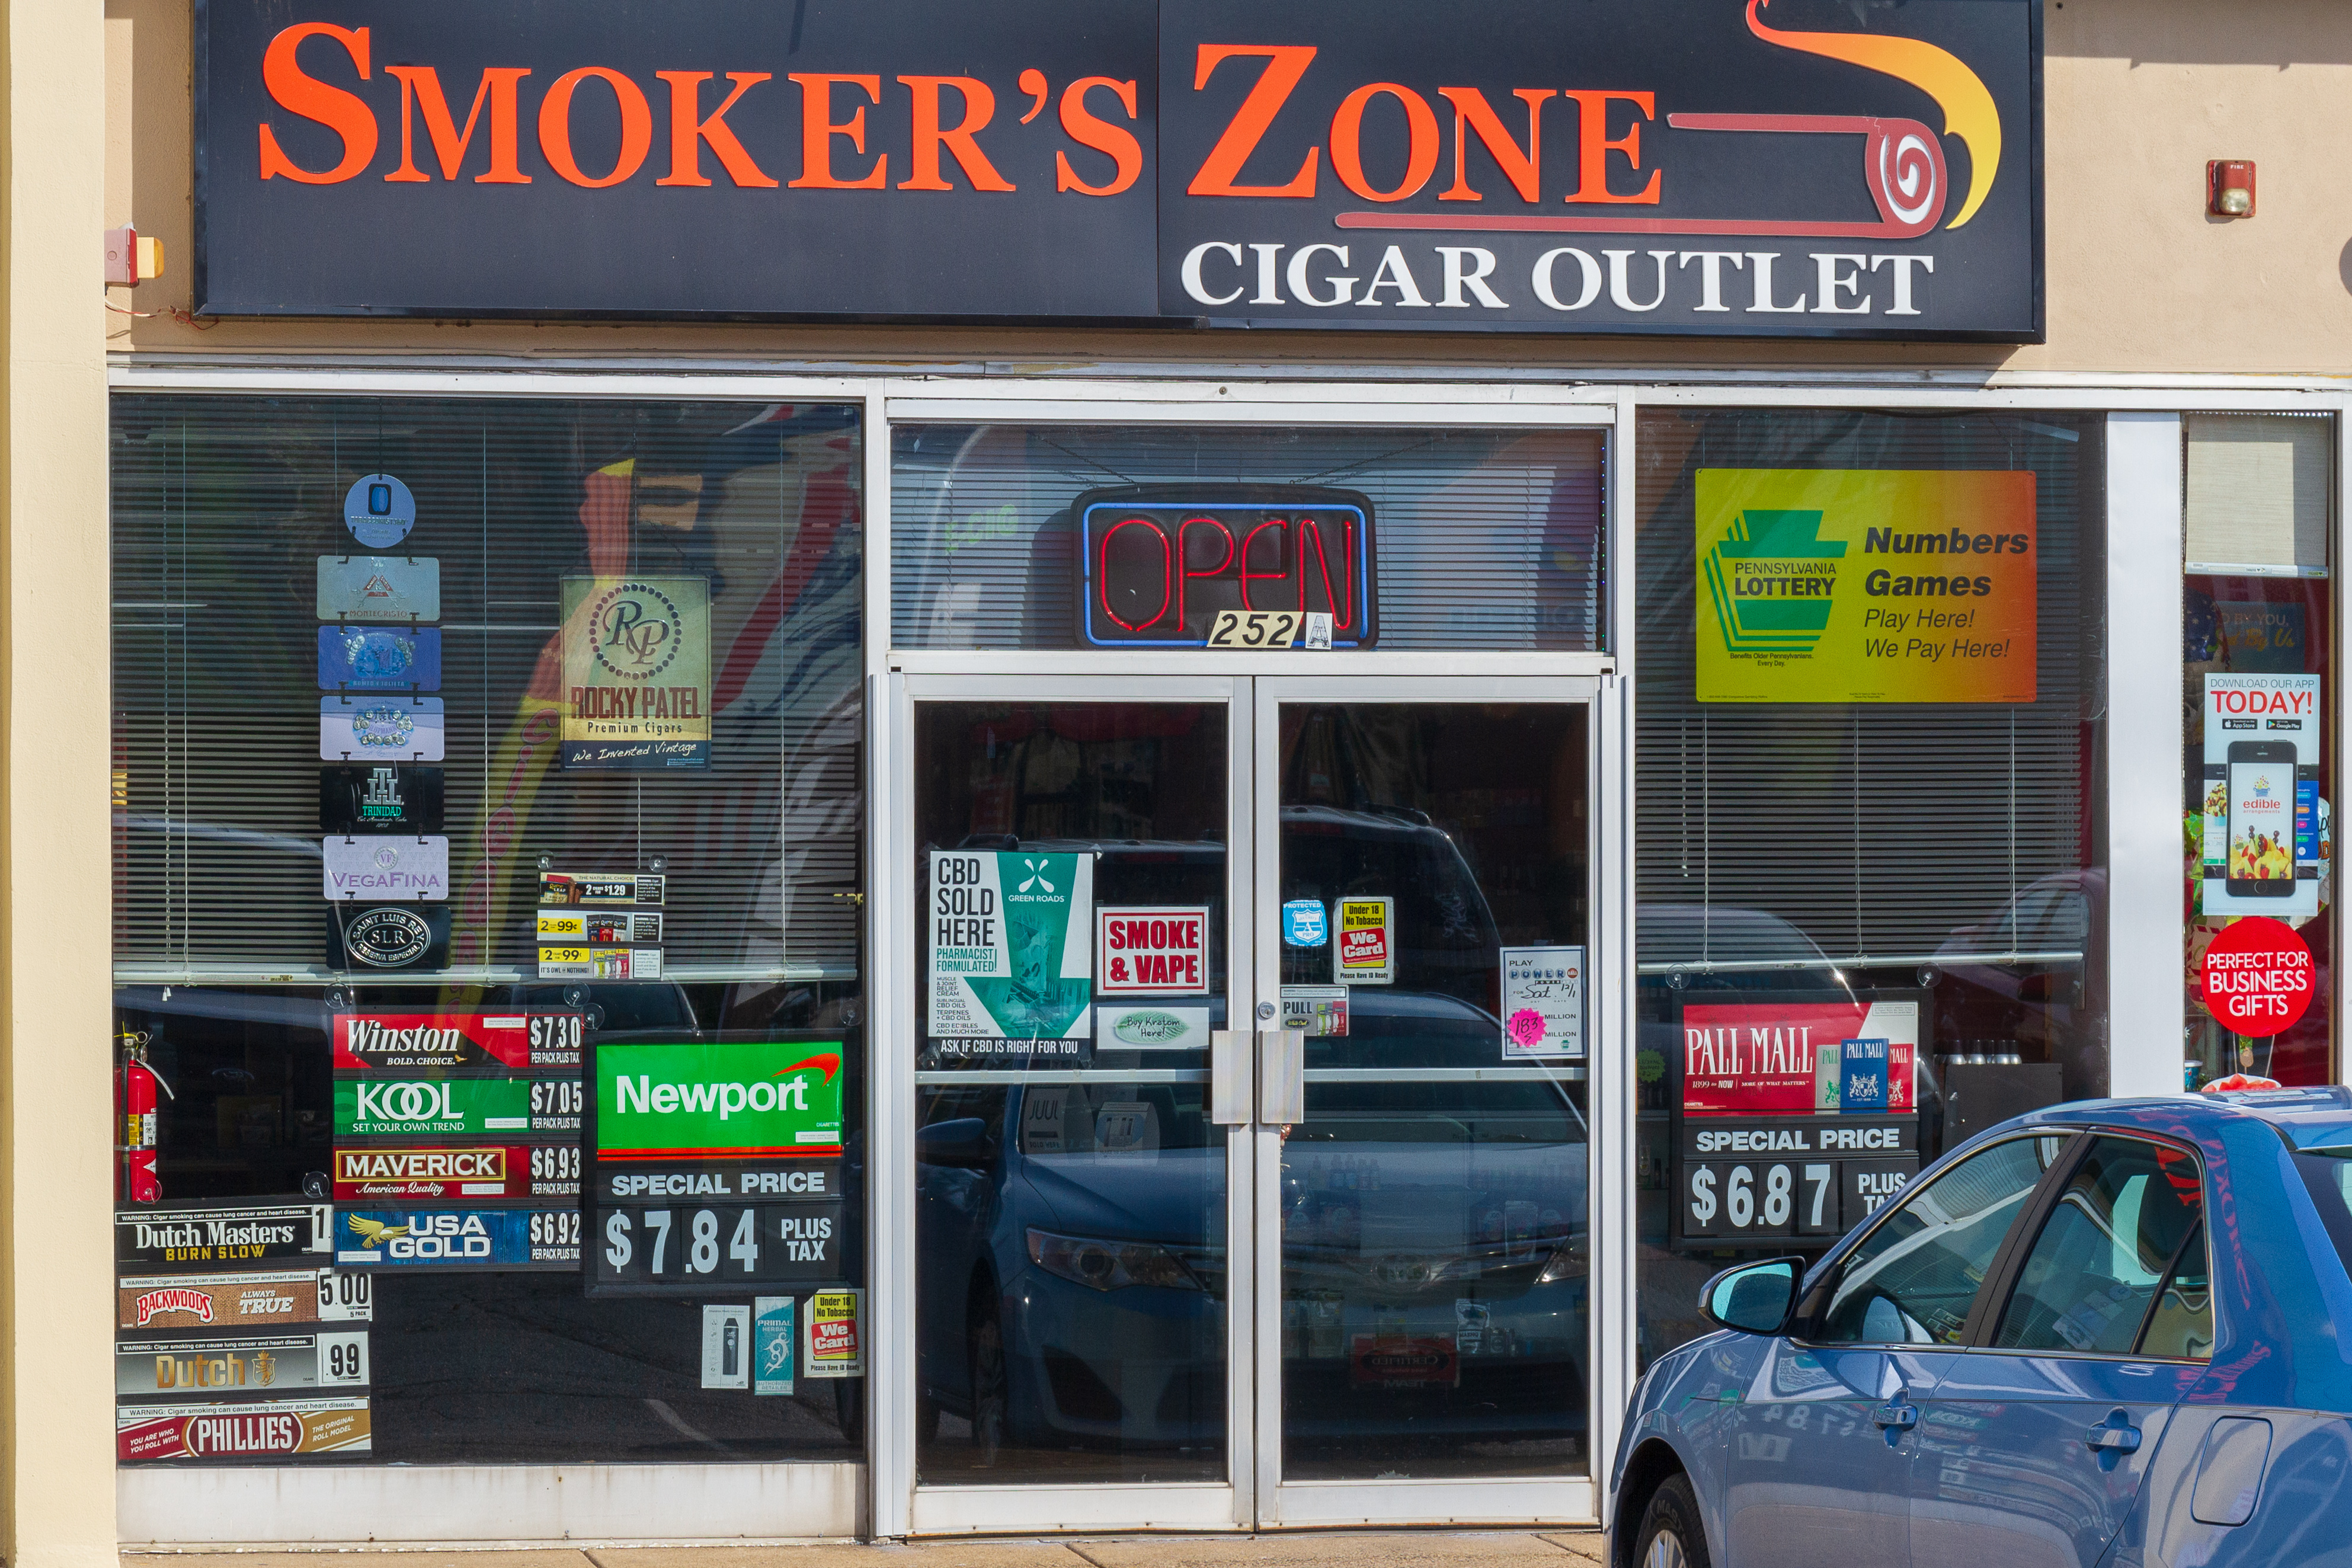 Smoker's Zone Premium Cigars Tobacco_0085